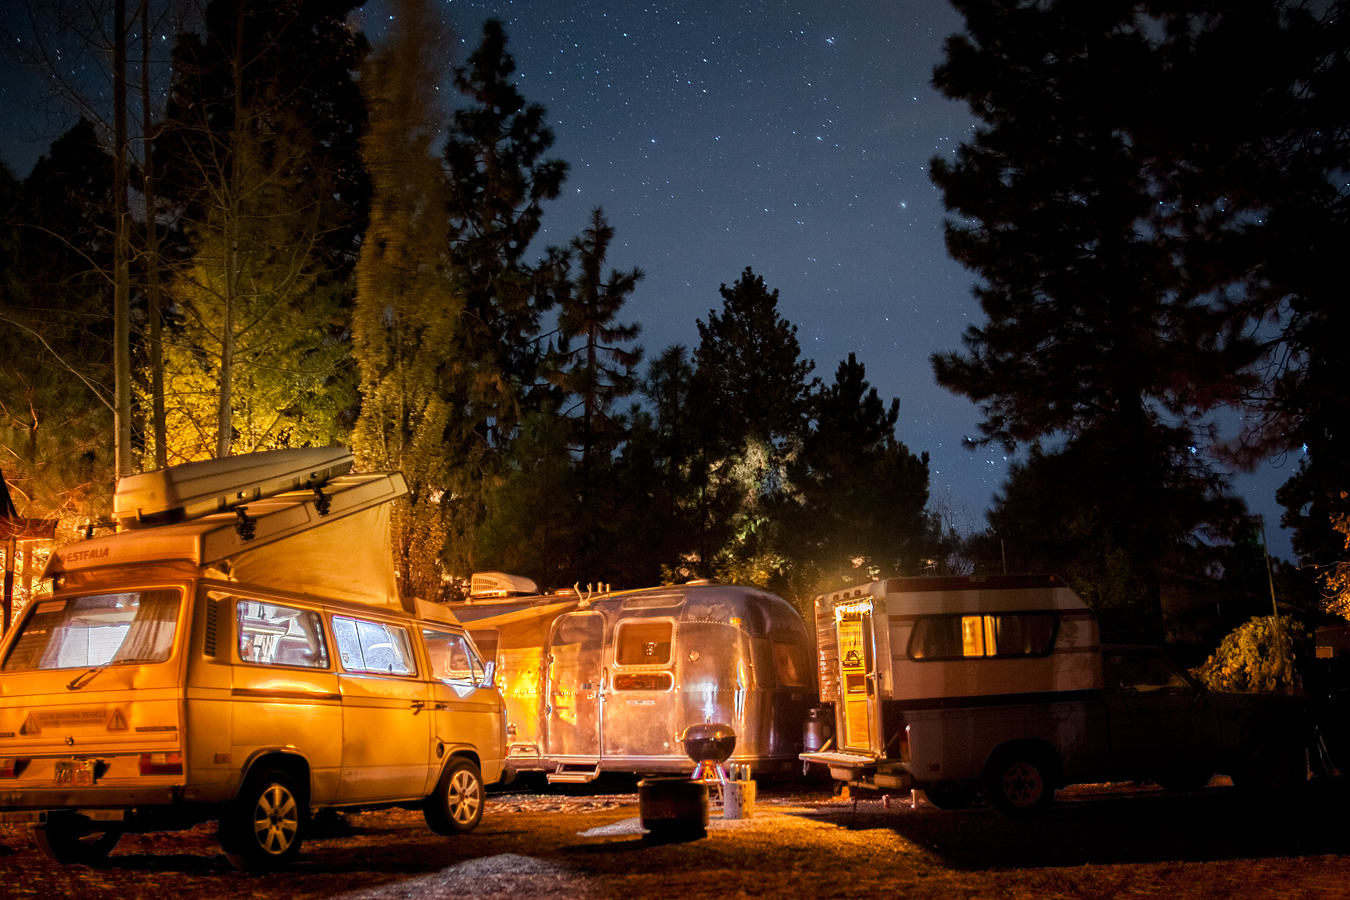 2017_lifestyle_campers_starry_night_LR